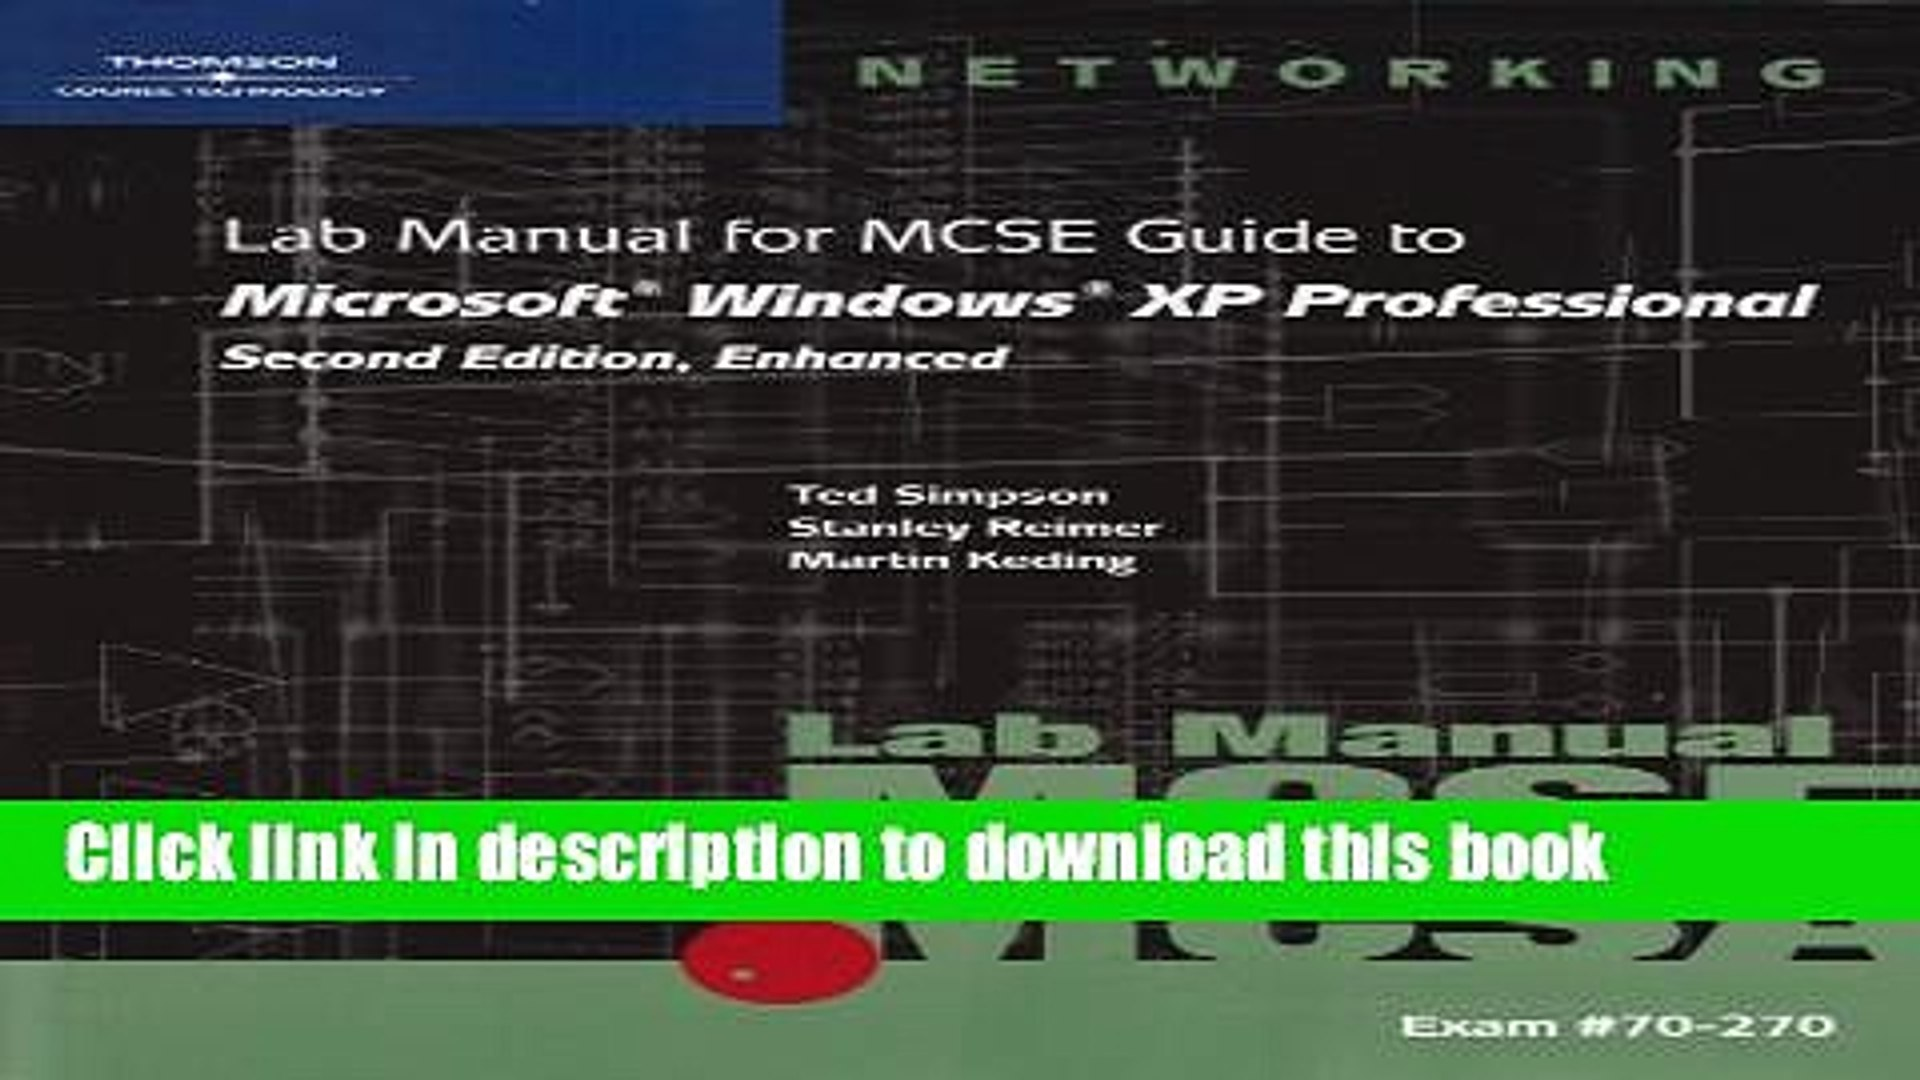 70-270 Lab Manual for MCSE Guide to Microsoft Windows XP Professional Second Edition Enhanced